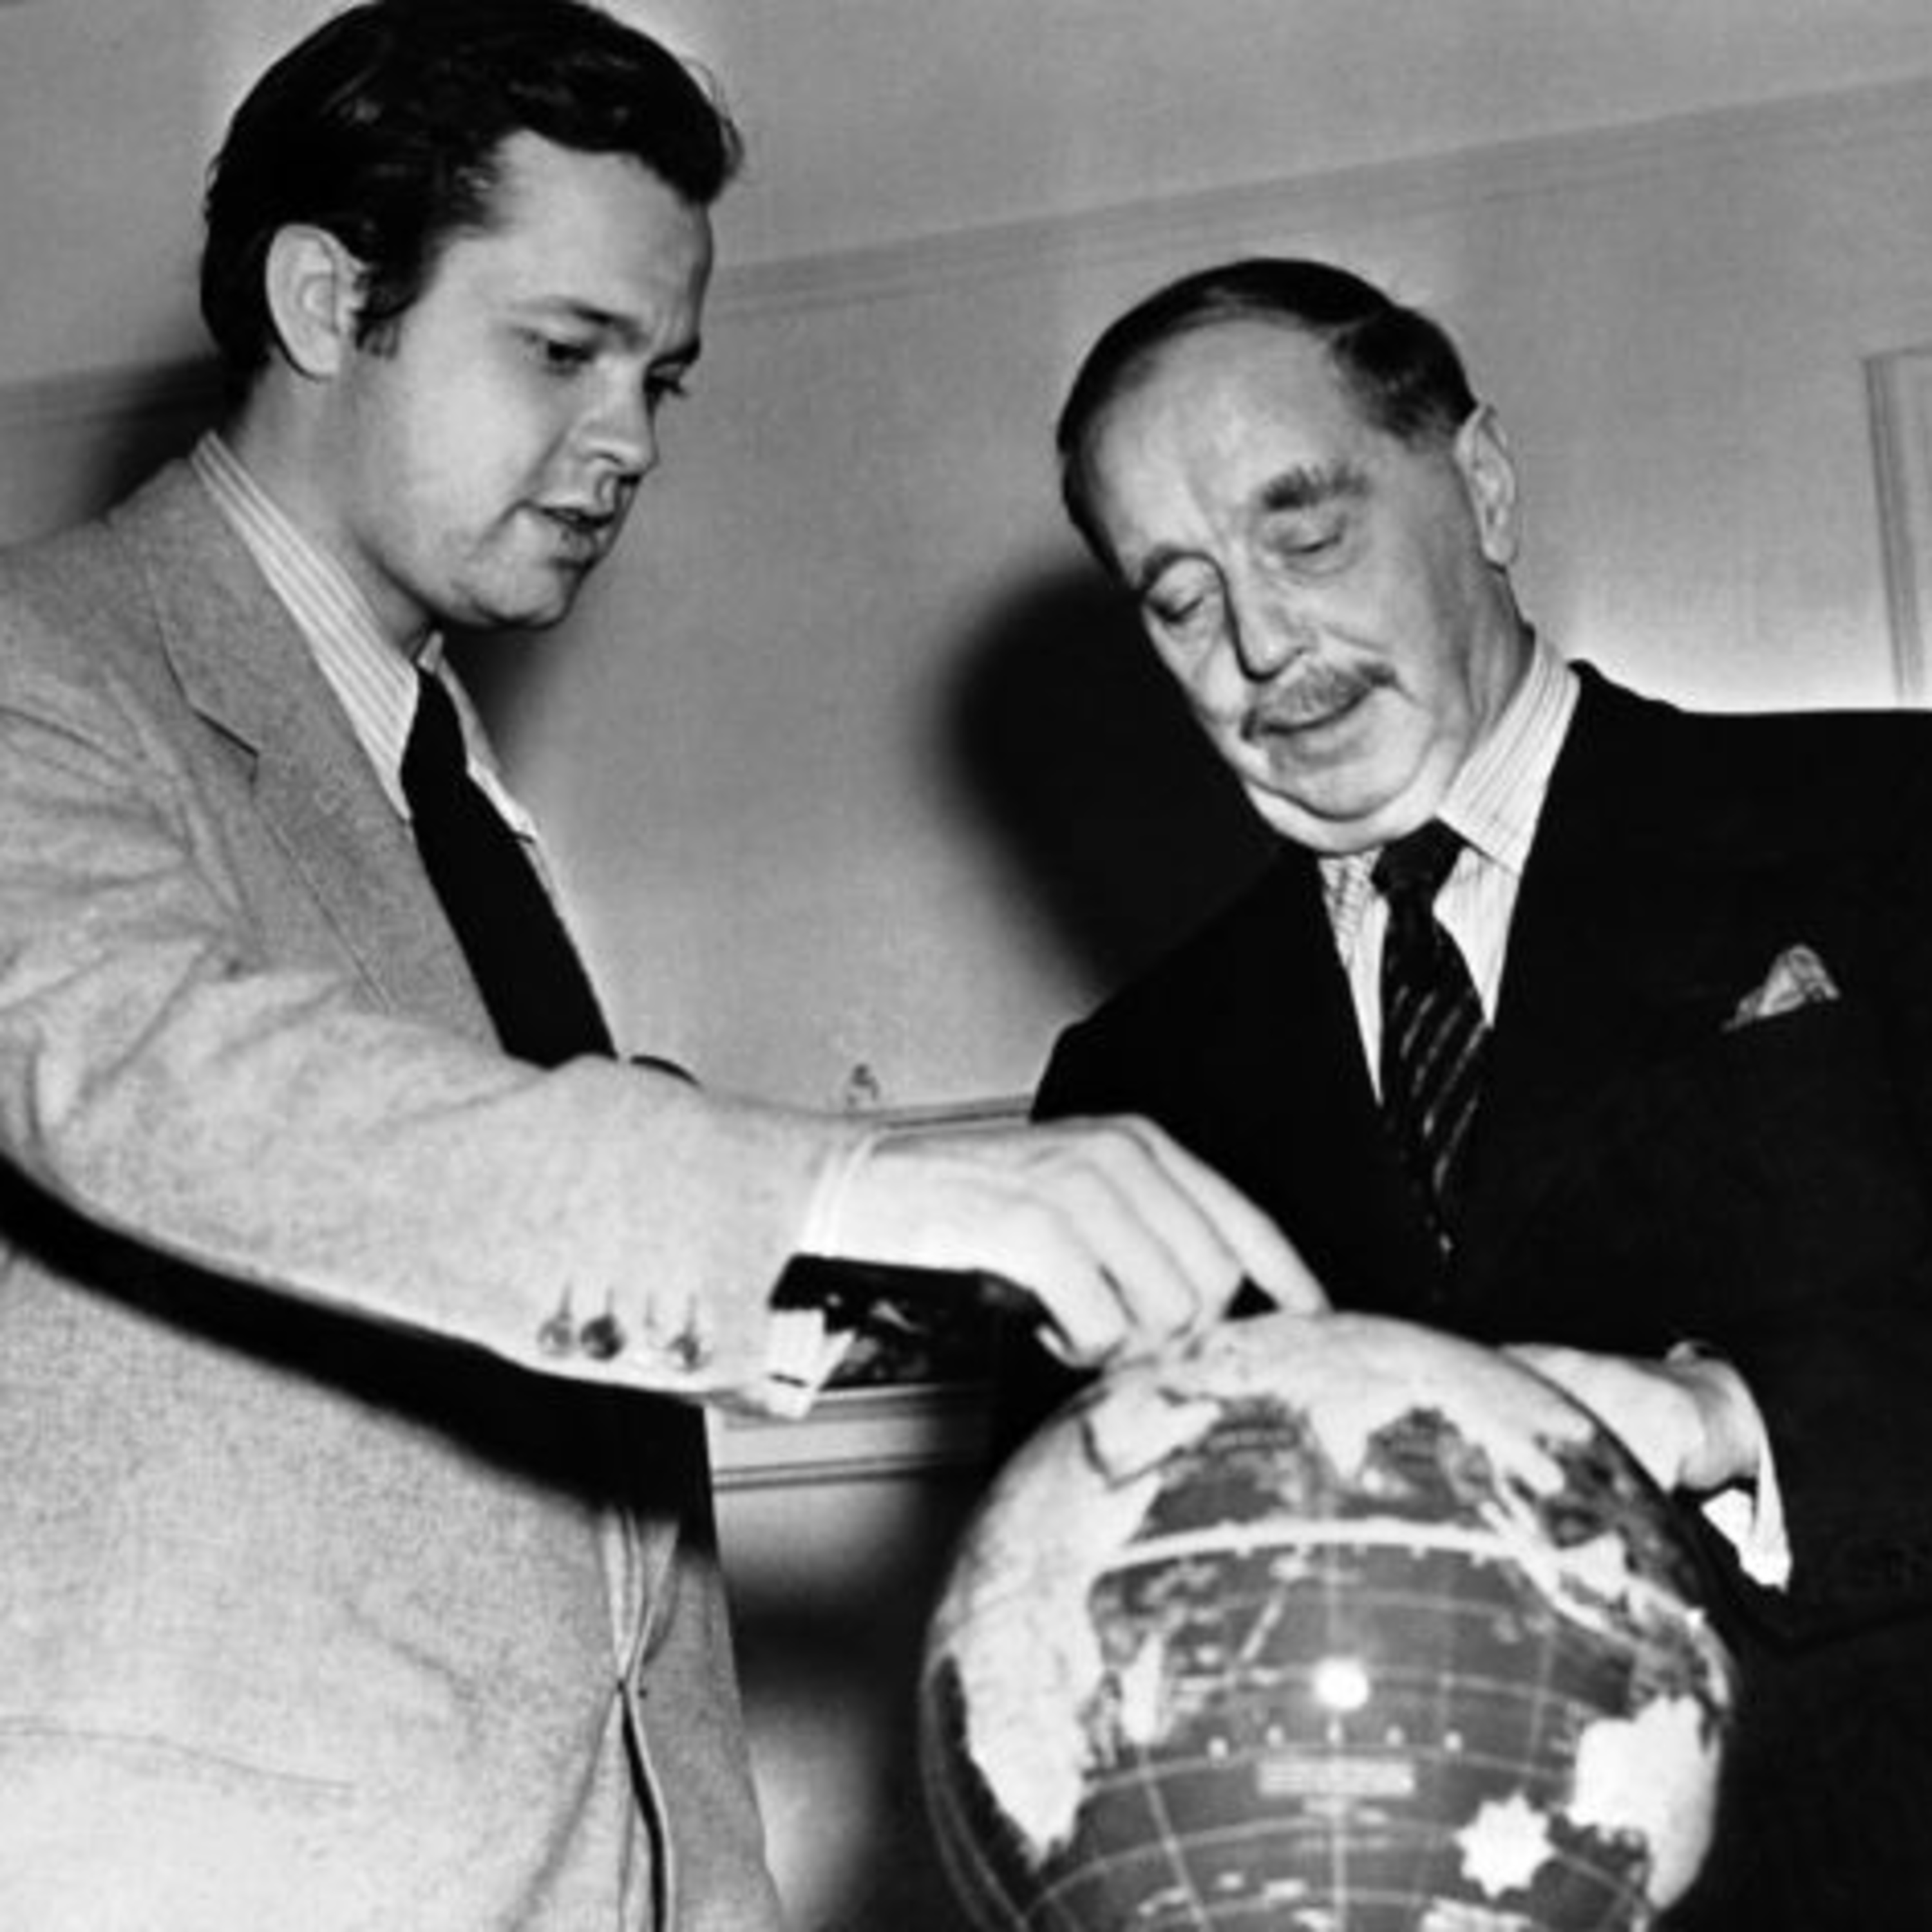 H.G. Wells Meets Orson Welles - Rare Recording